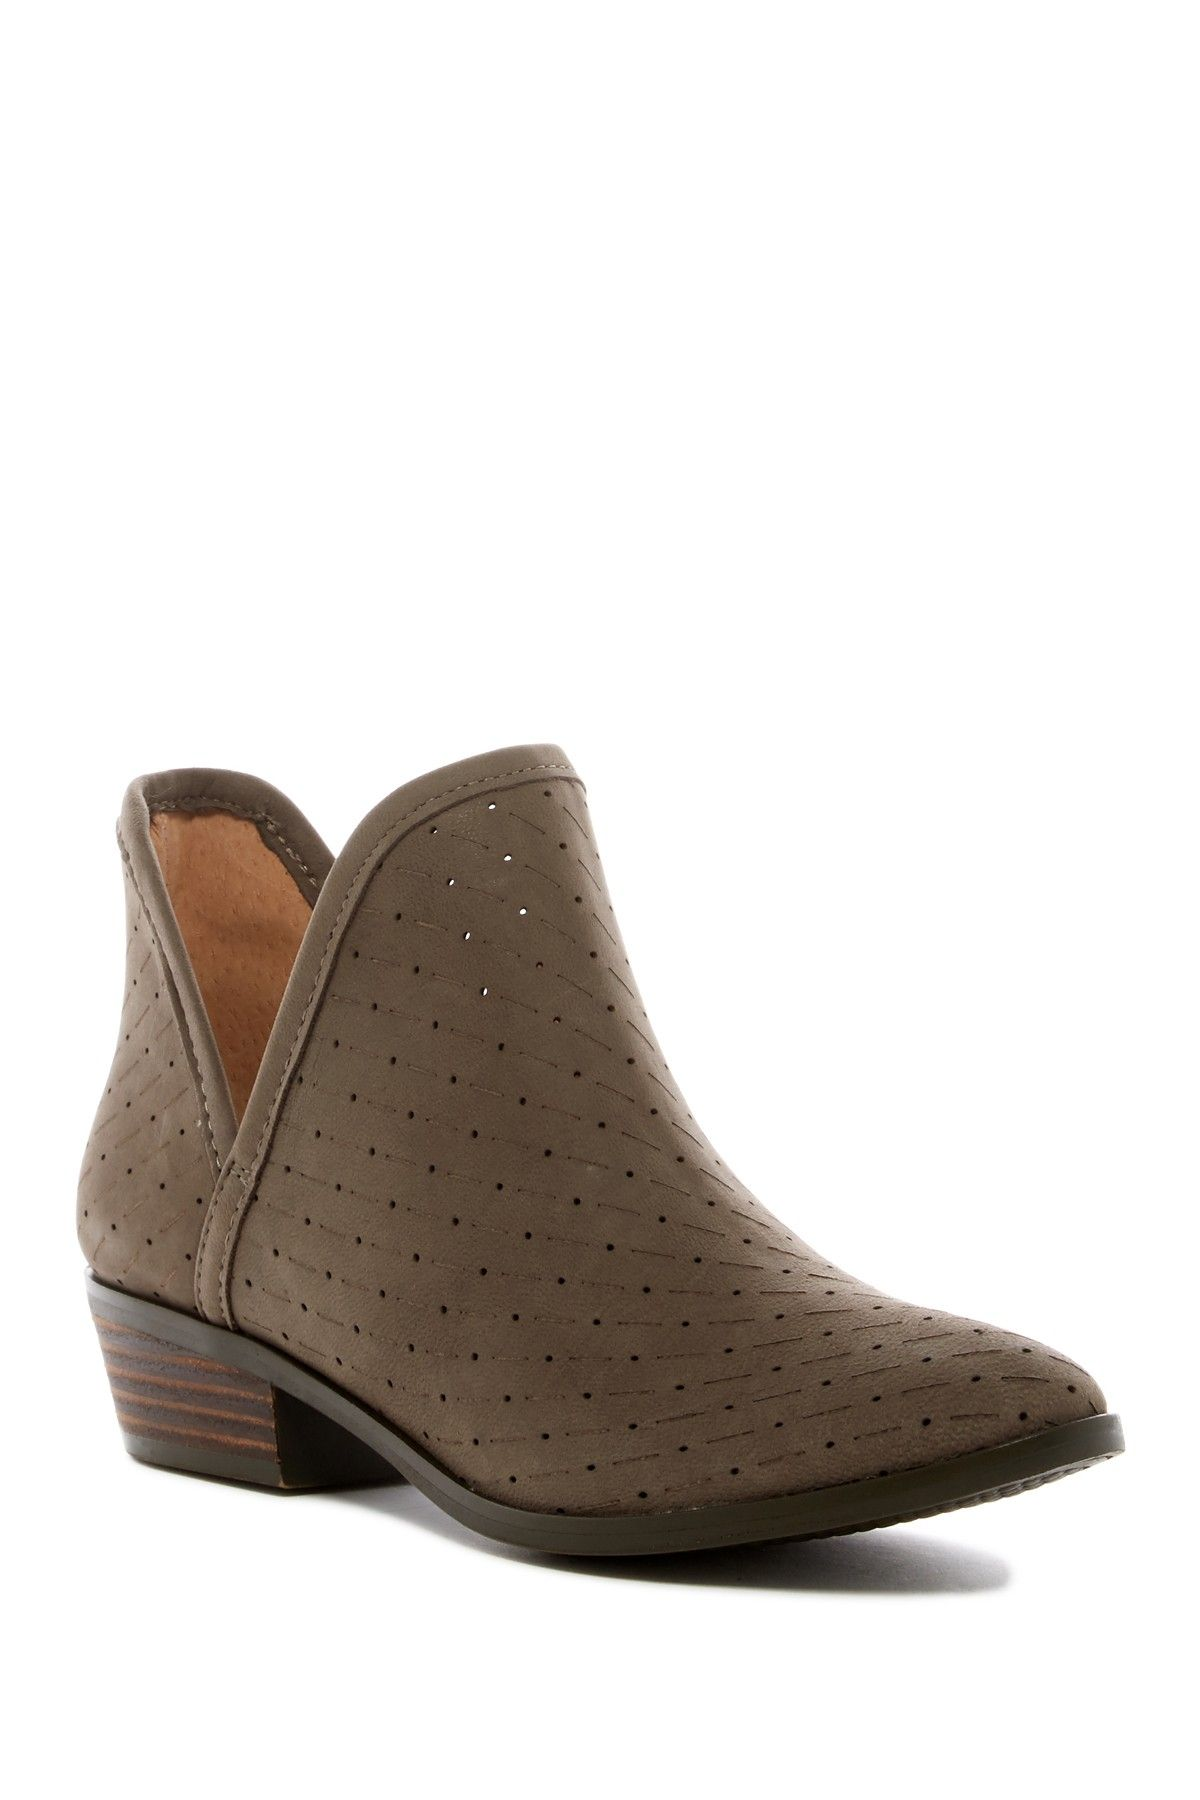 d7a64183c5ac8a Kelbie 2 Bootie by Lucky Brand on  nordstrom rack